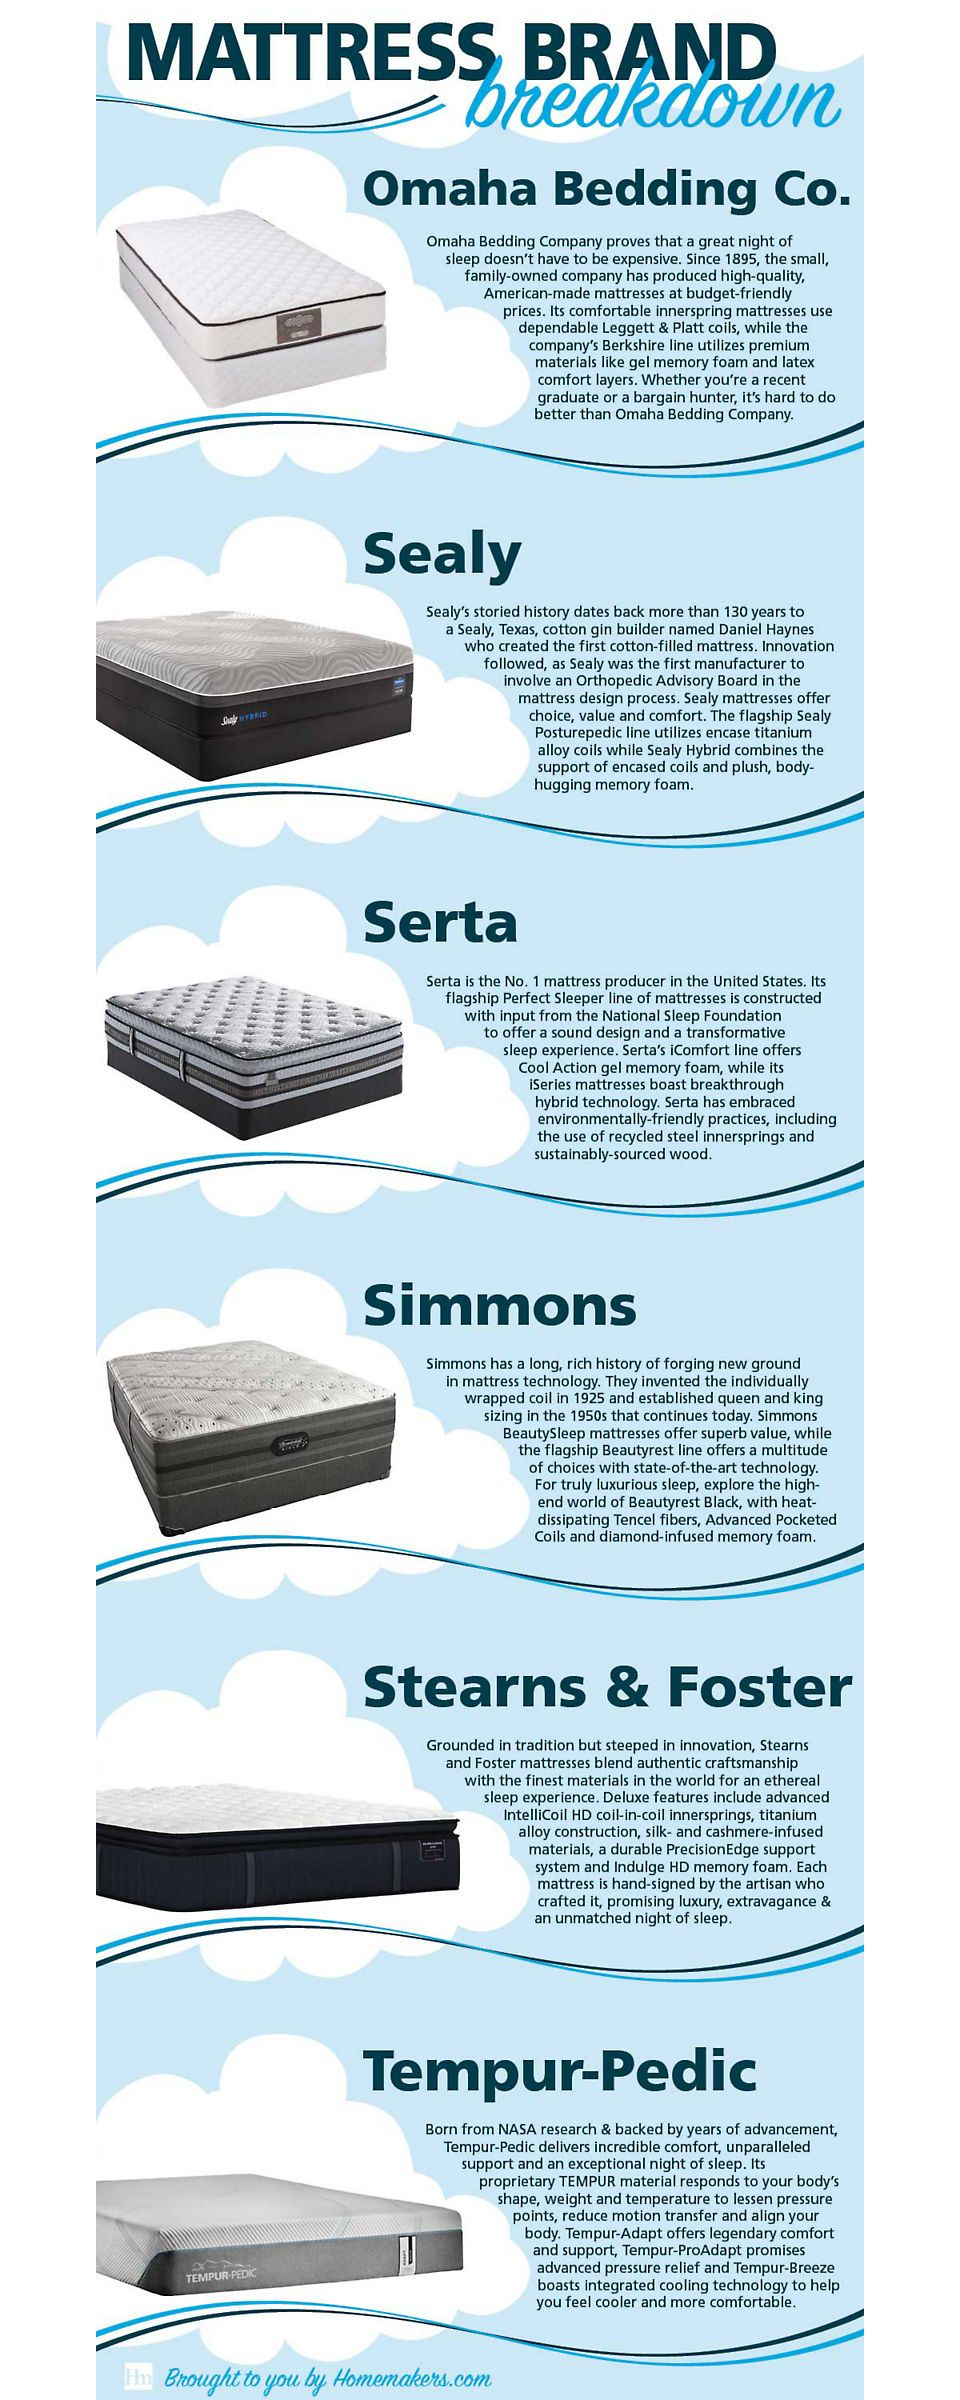 6 Best Mattress Brands of 2019 | Homemakers | Mattress, Best mattress